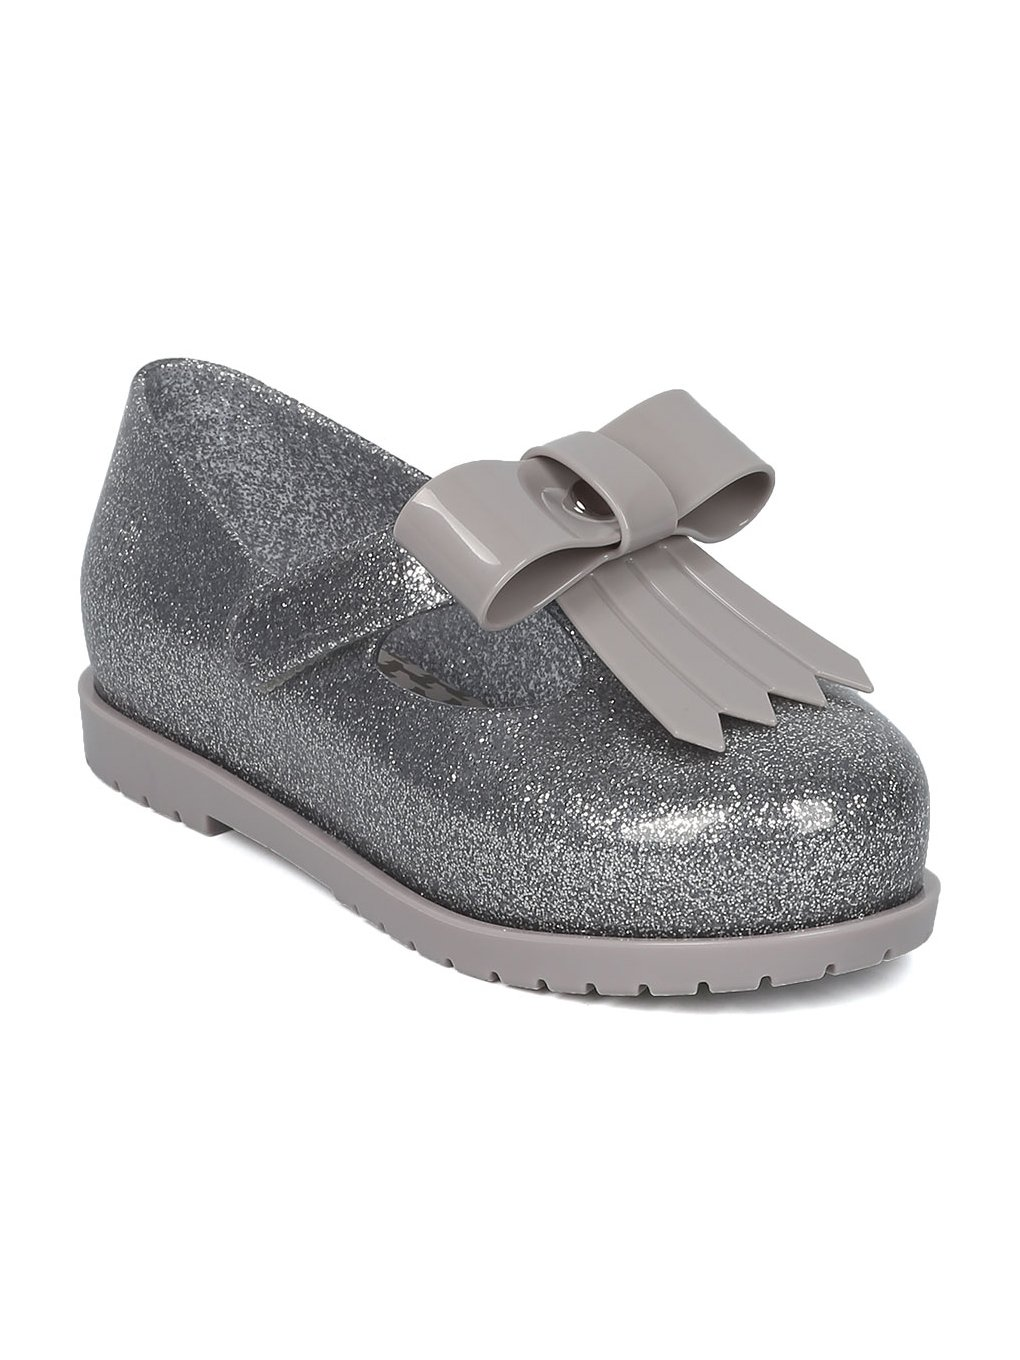 Melissa Mini Mini Classic Baby II Bow Tie Mary Jane Walker Flat HC07 - Glass Silver (Size: Toddler 7)